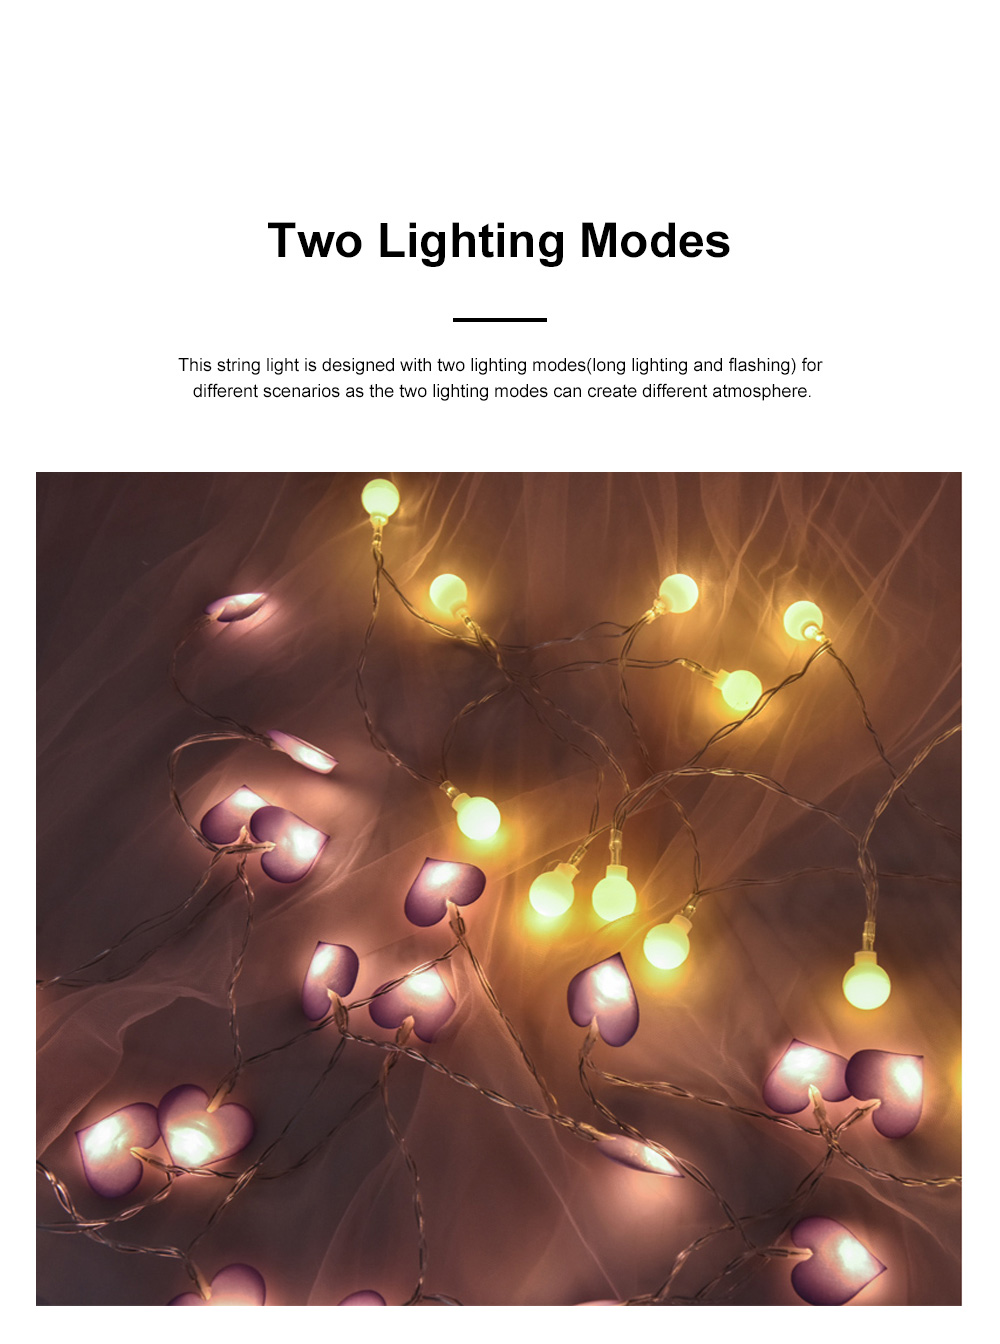 3m 5m 10m Cloth Art Love Lamp String Heart Shape Battery Powered LED String Twinkling Lights for Home Party Festival Wedding Xmas Decoration 1